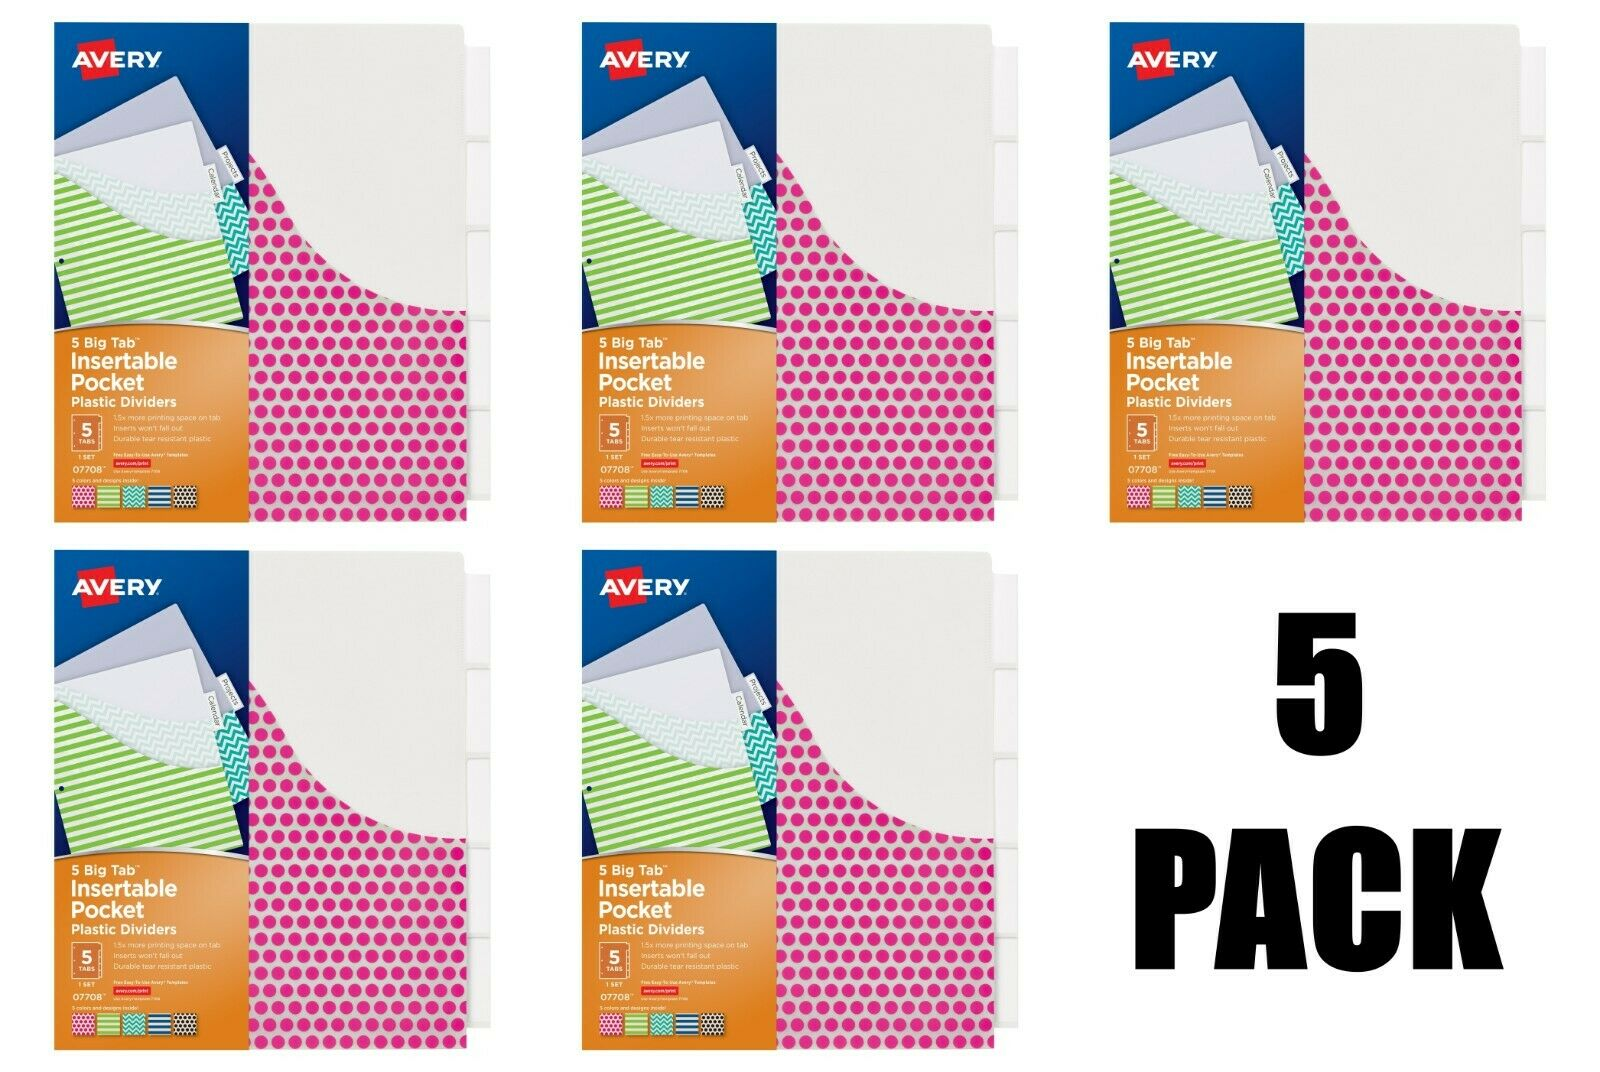 Avery 5-Tab Plastic Binder Dividers with Pockets, Insertable